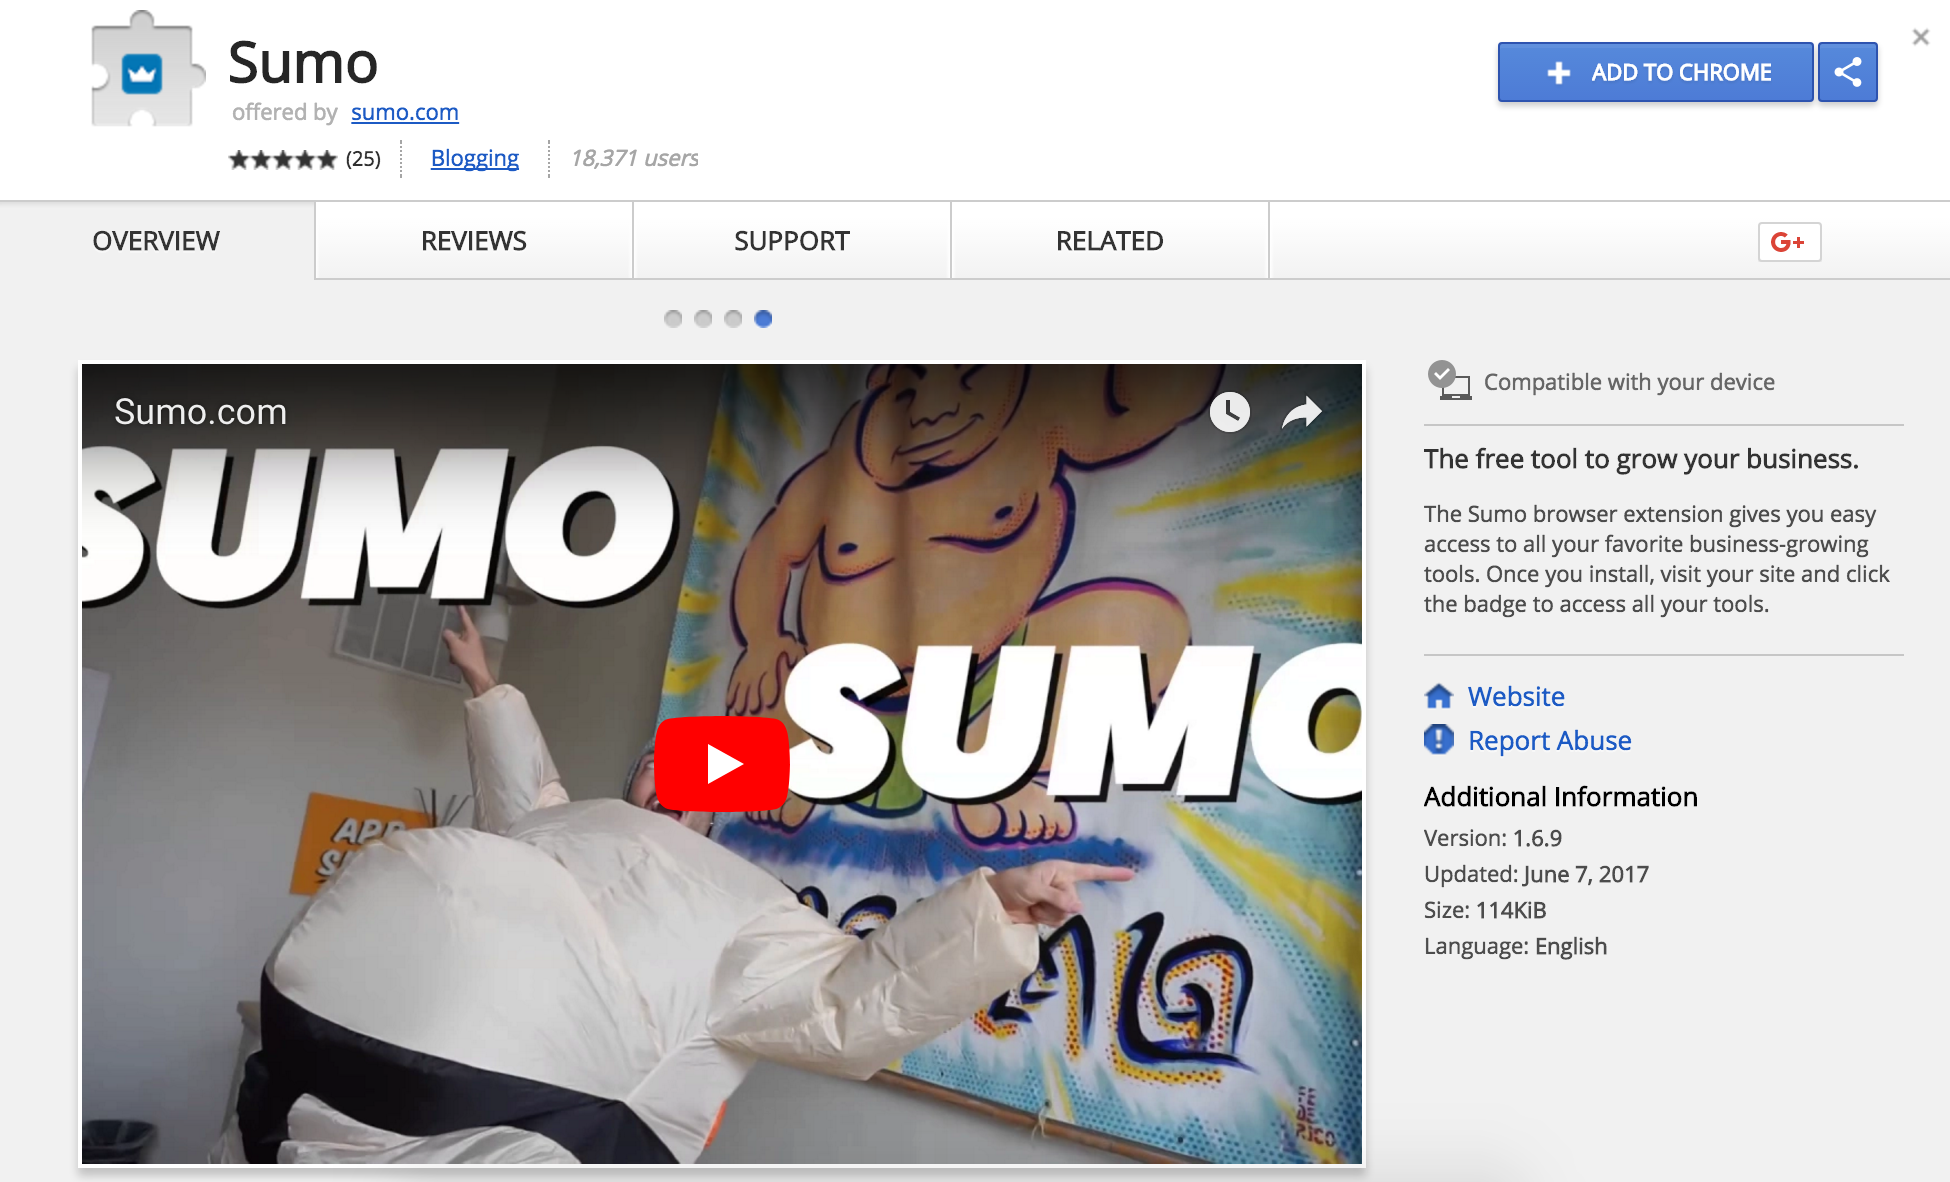 Screenshot of the Sumo Chrome Extension